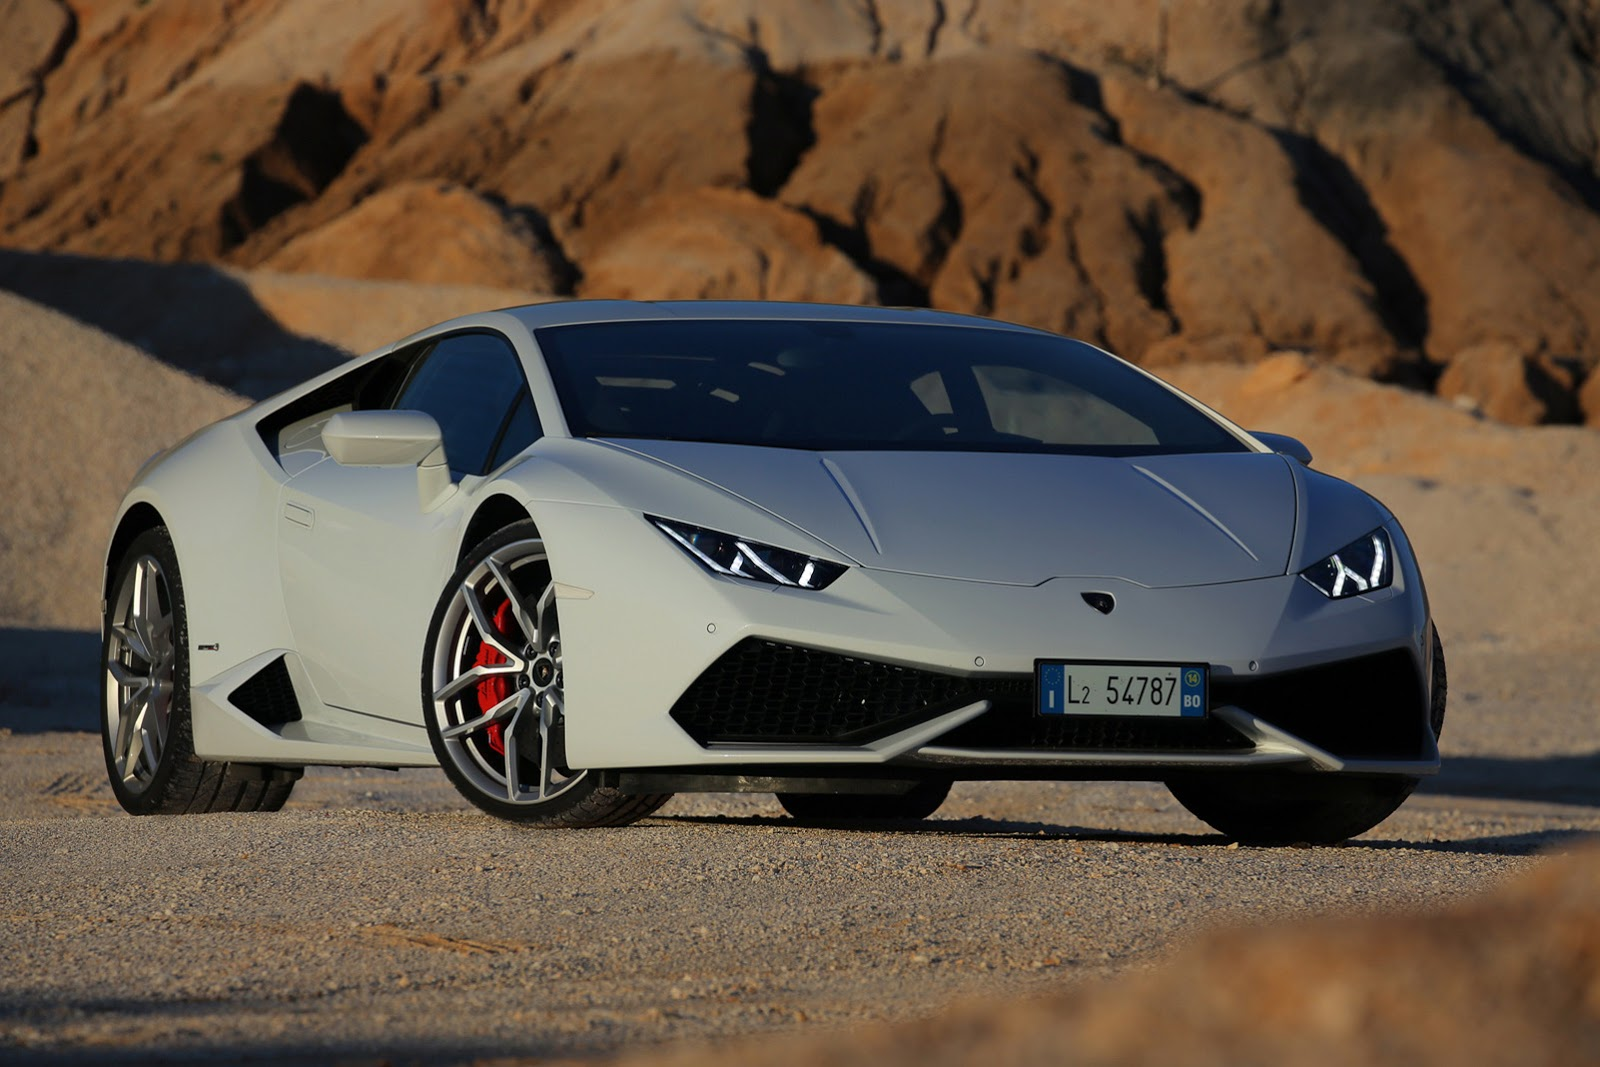 Lamborghini Huracán : la Supercar sublimée à travers un nouvel album photo officiel !